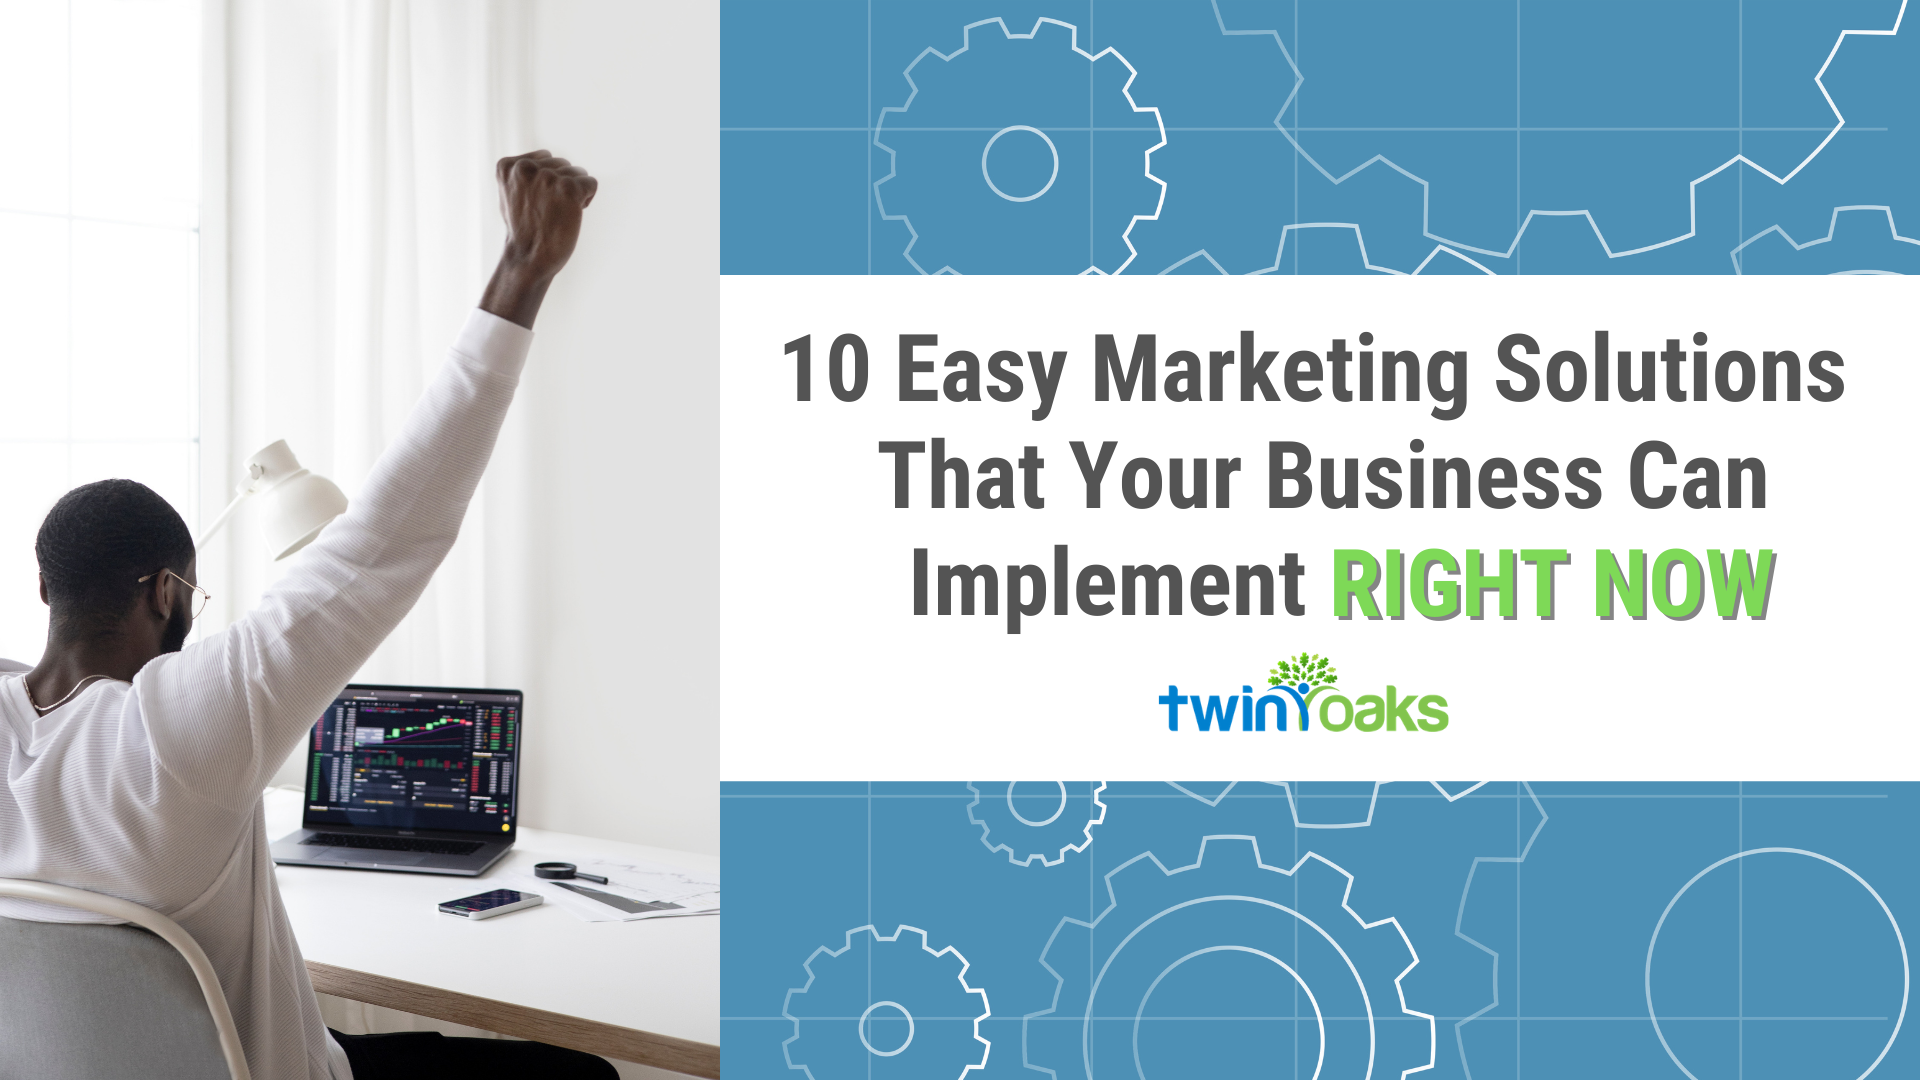 Man Celebrates Success in Front of Computer Screen, 10 Easy Marketing Solutions Your Business Can Implement - RIGHT NOW and Twin Oaks Technology logo